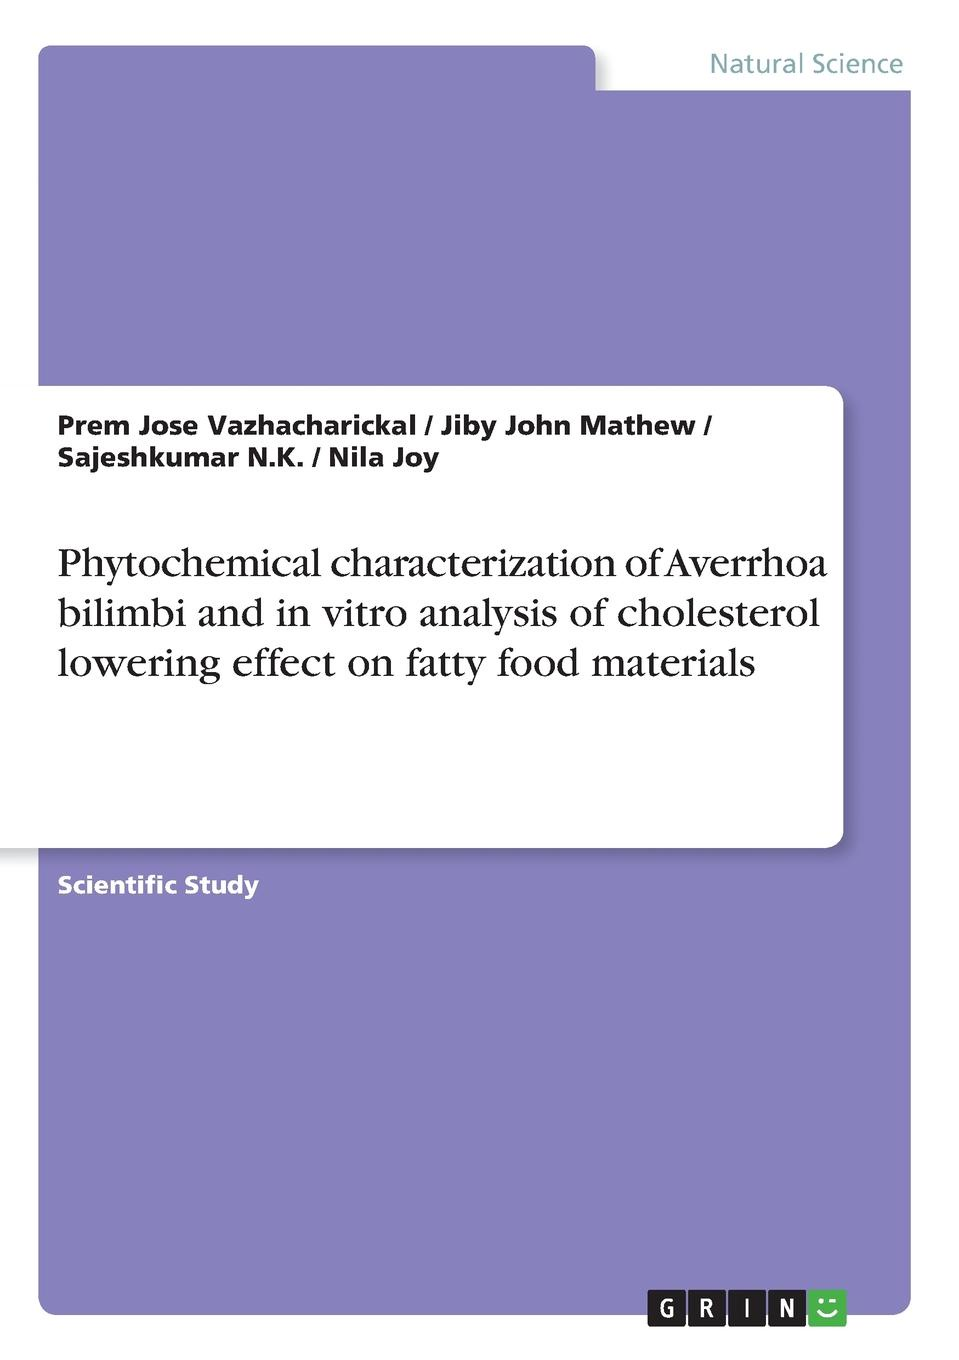 Jiby John Mathew, Sajeshkumar N.K., Prem Jose Vazhacharickal Phytochemical characterization of Averrhoa bilimbi and in vitro analysis of cholesterol lowering effect on fatty food materials jiby john mathew prem jose vazhacharickal sajeshkumar n k the honey apple and its phytochemical analysis